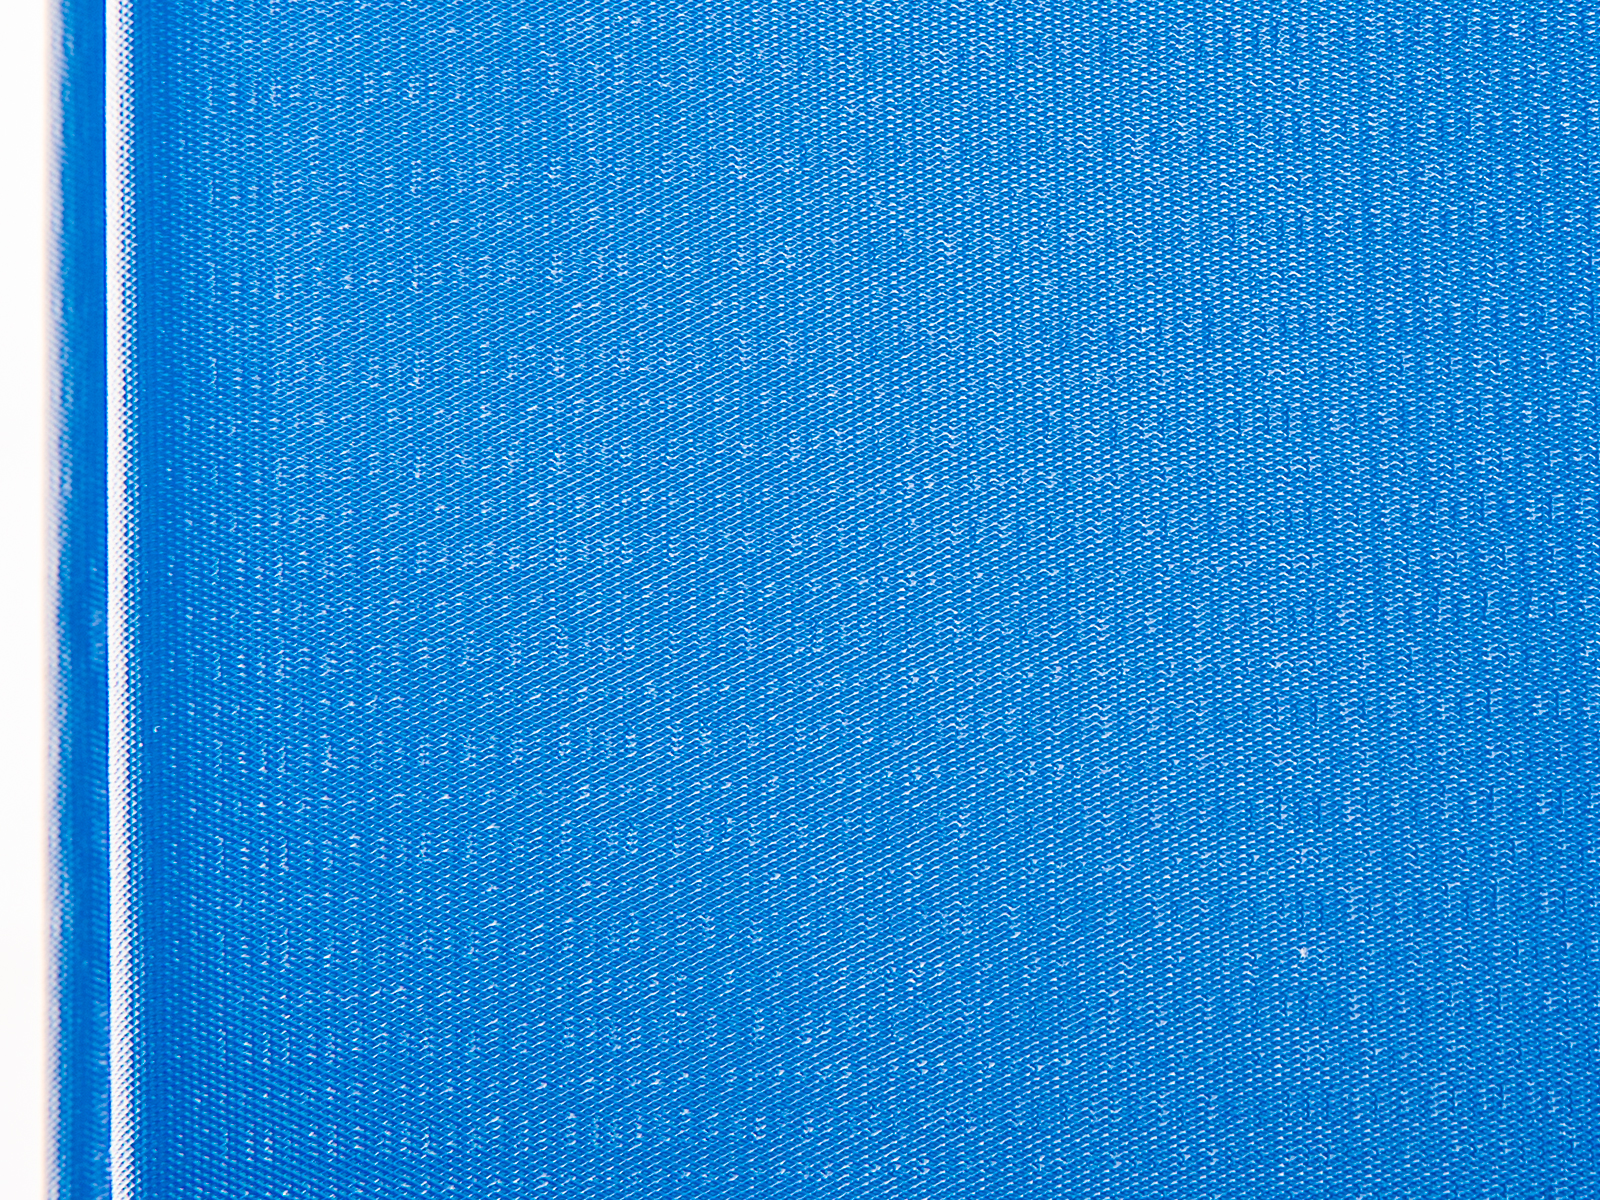 Close up of blue workout mat